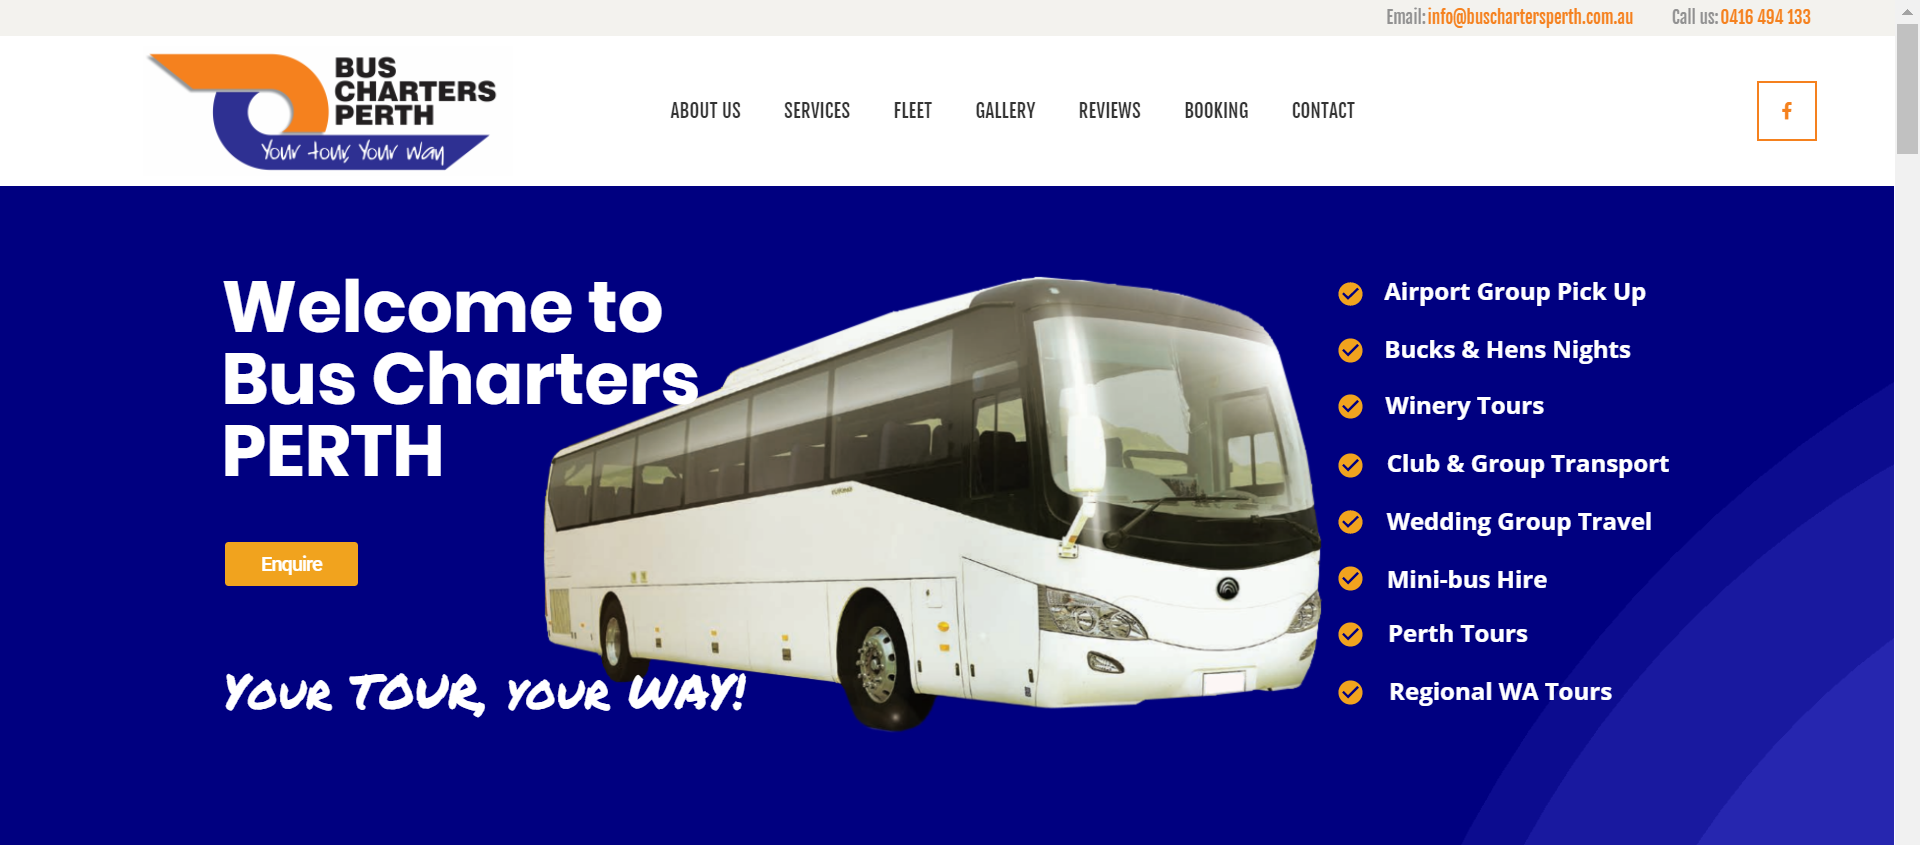 Bus Charters Perth